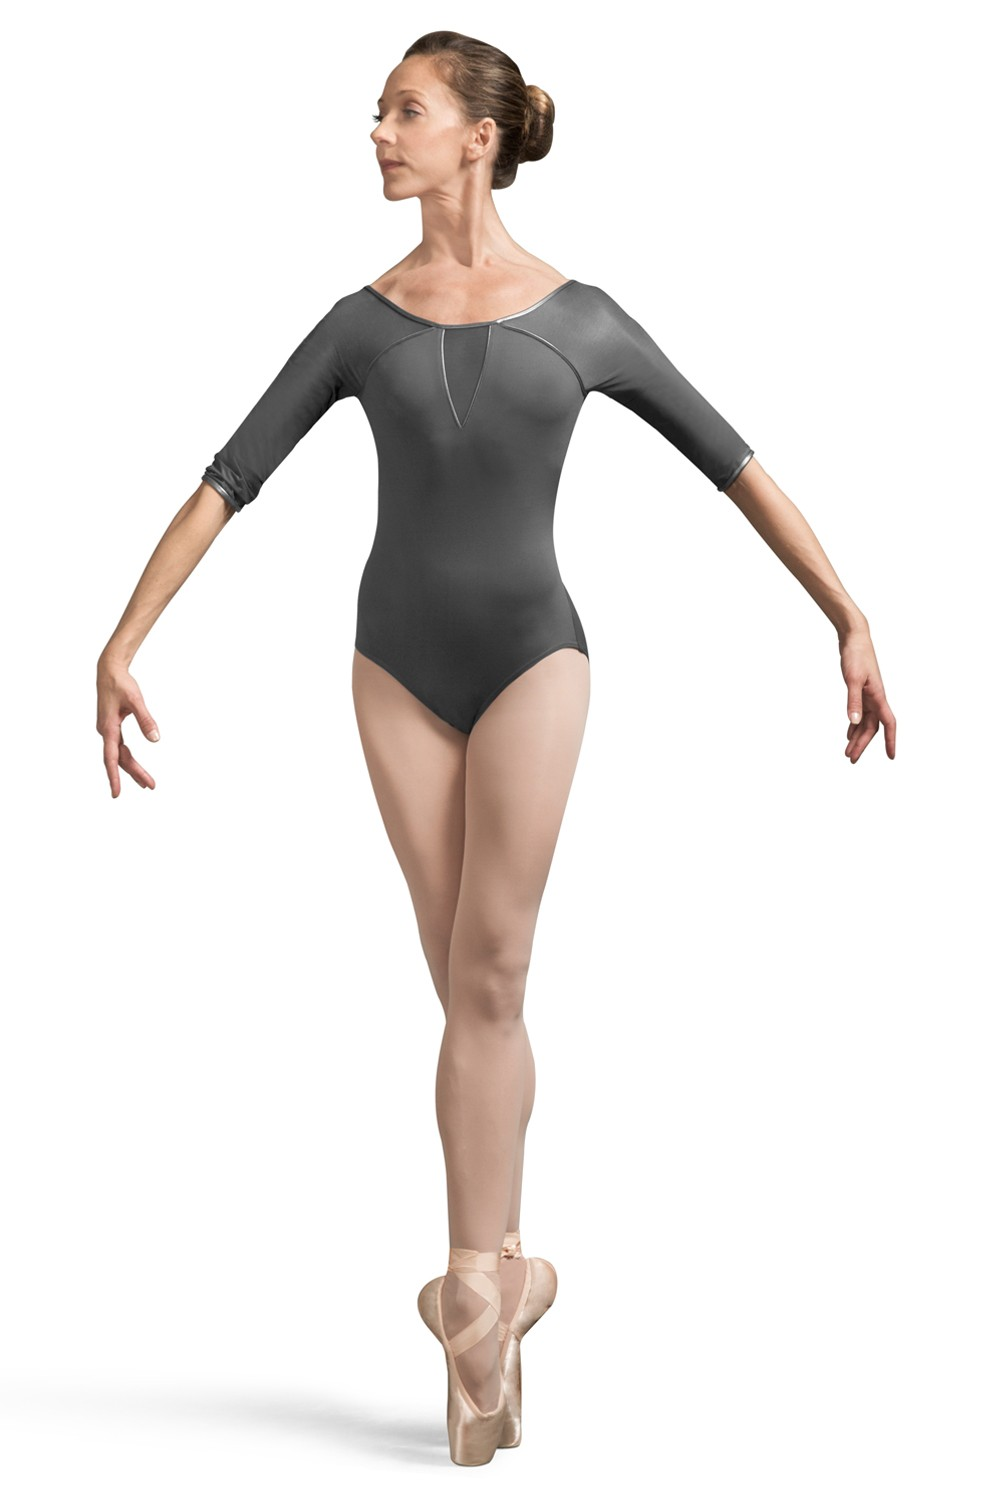 Ales Faux Leather 3/4 Sleeve Leotard Women's Dance Leotards